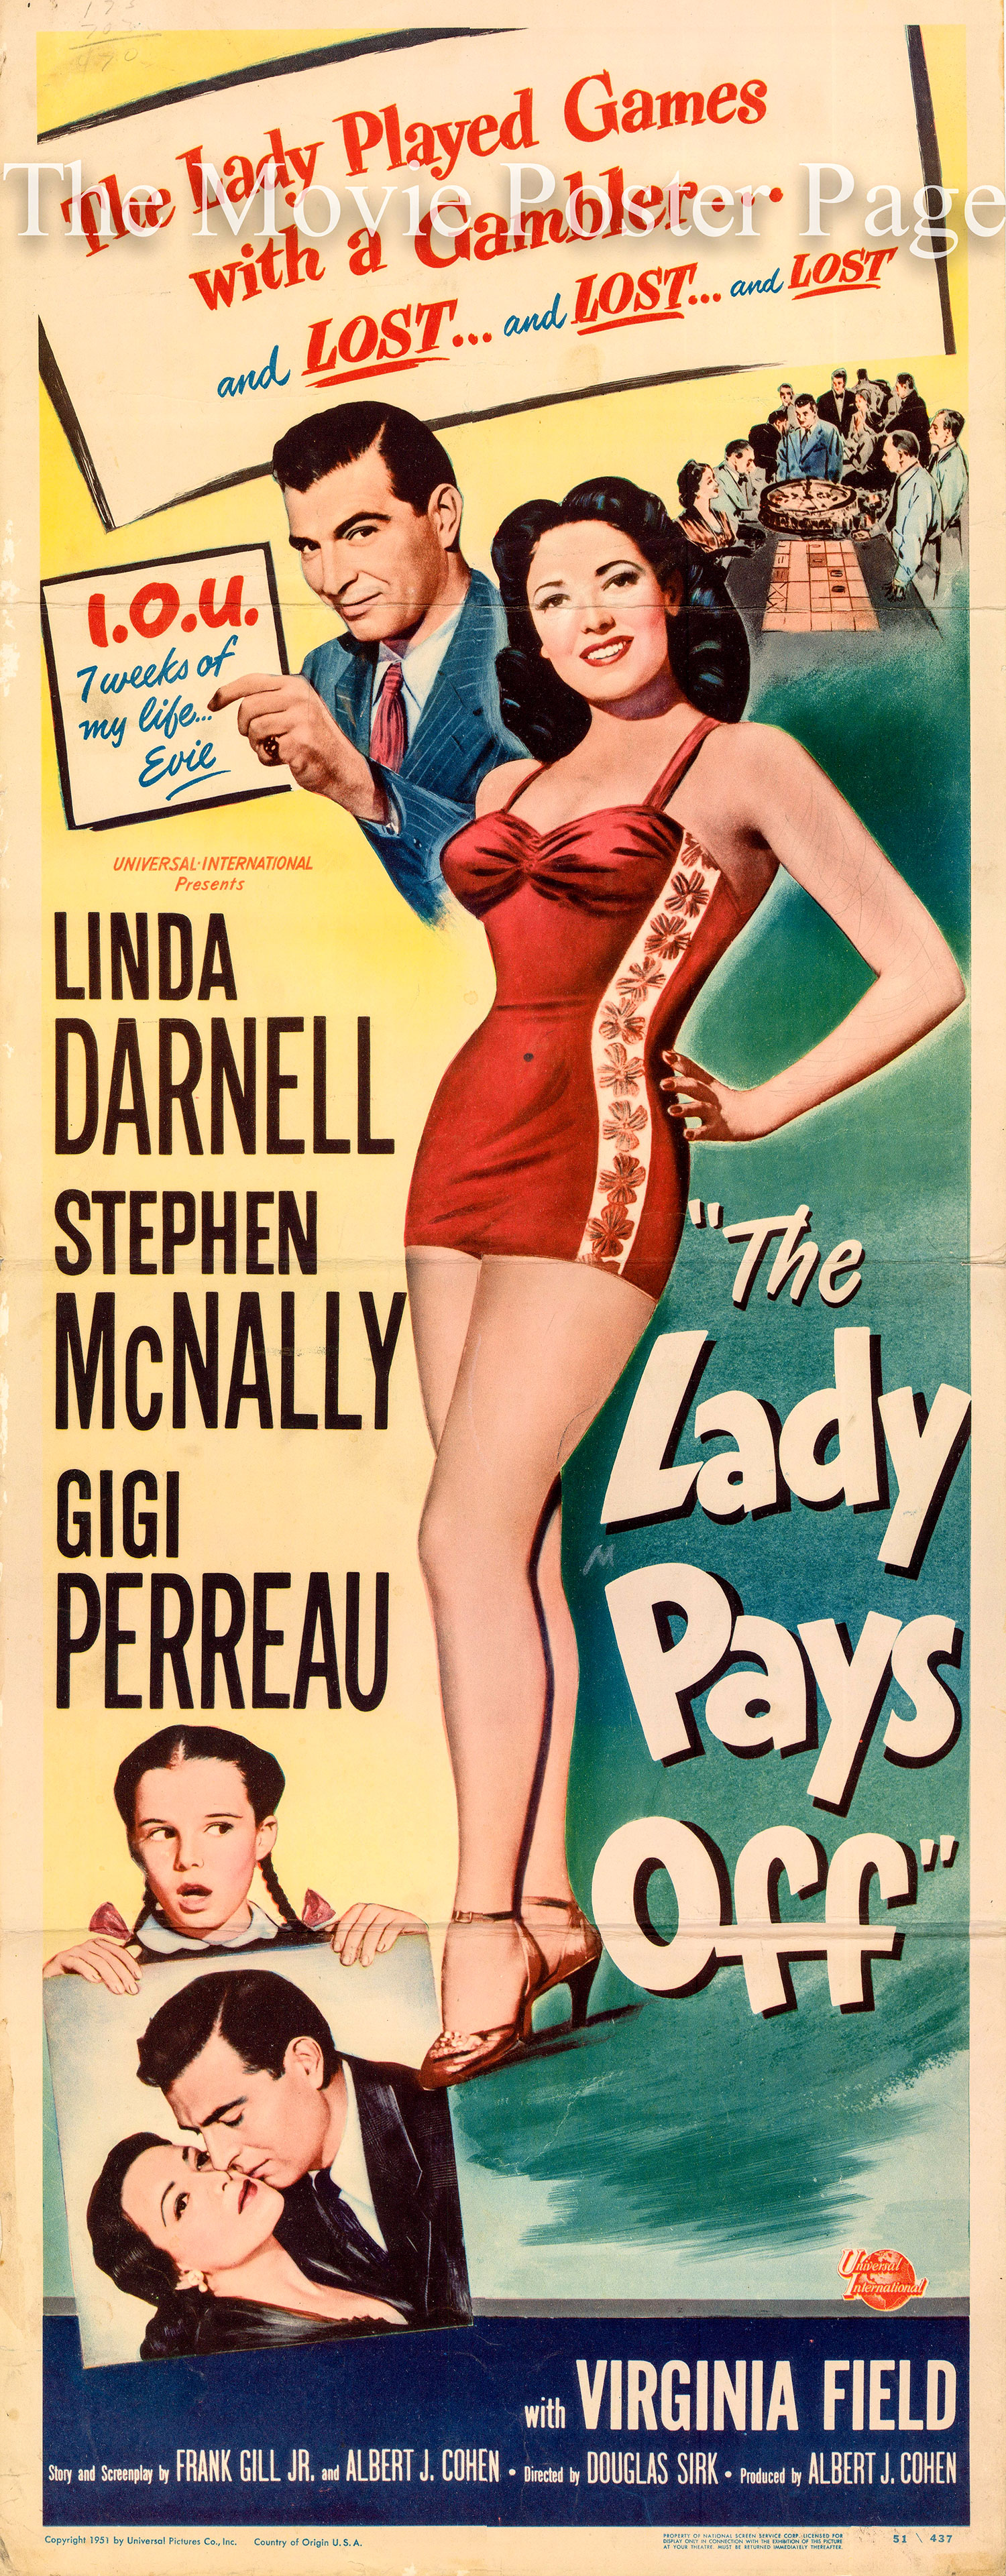 Pictured is a US insert promotional poster for the 1951 Douglas Sirk film The Lady Pays Off starring Linda Darnell.